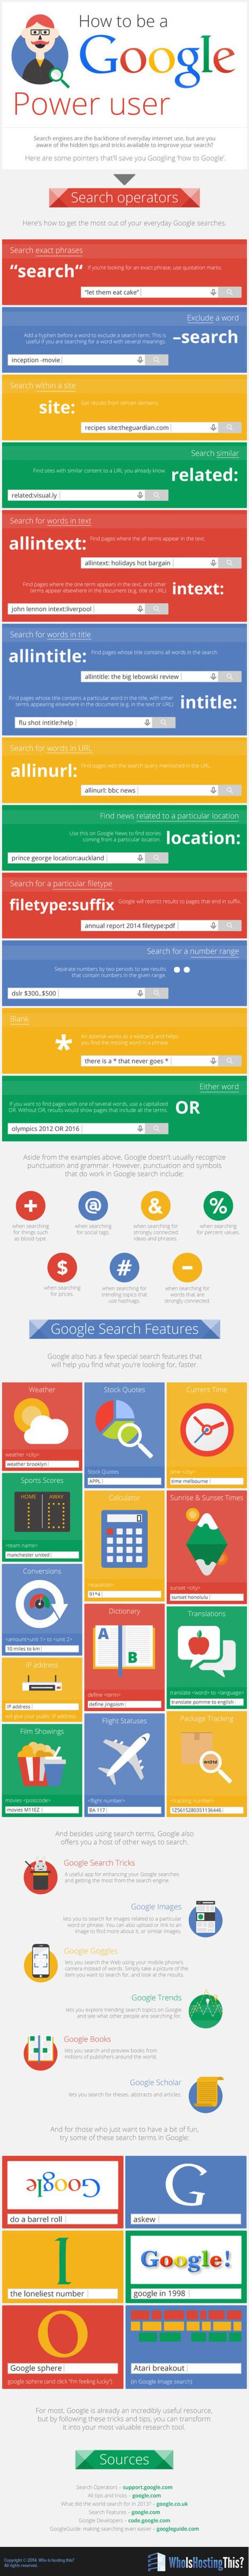 How To Be a Google PowerUser - Blog About Infographics and Data Visualization - Cool Infographics | Library, ICT, General Teaching Website Resources | Scoop.it